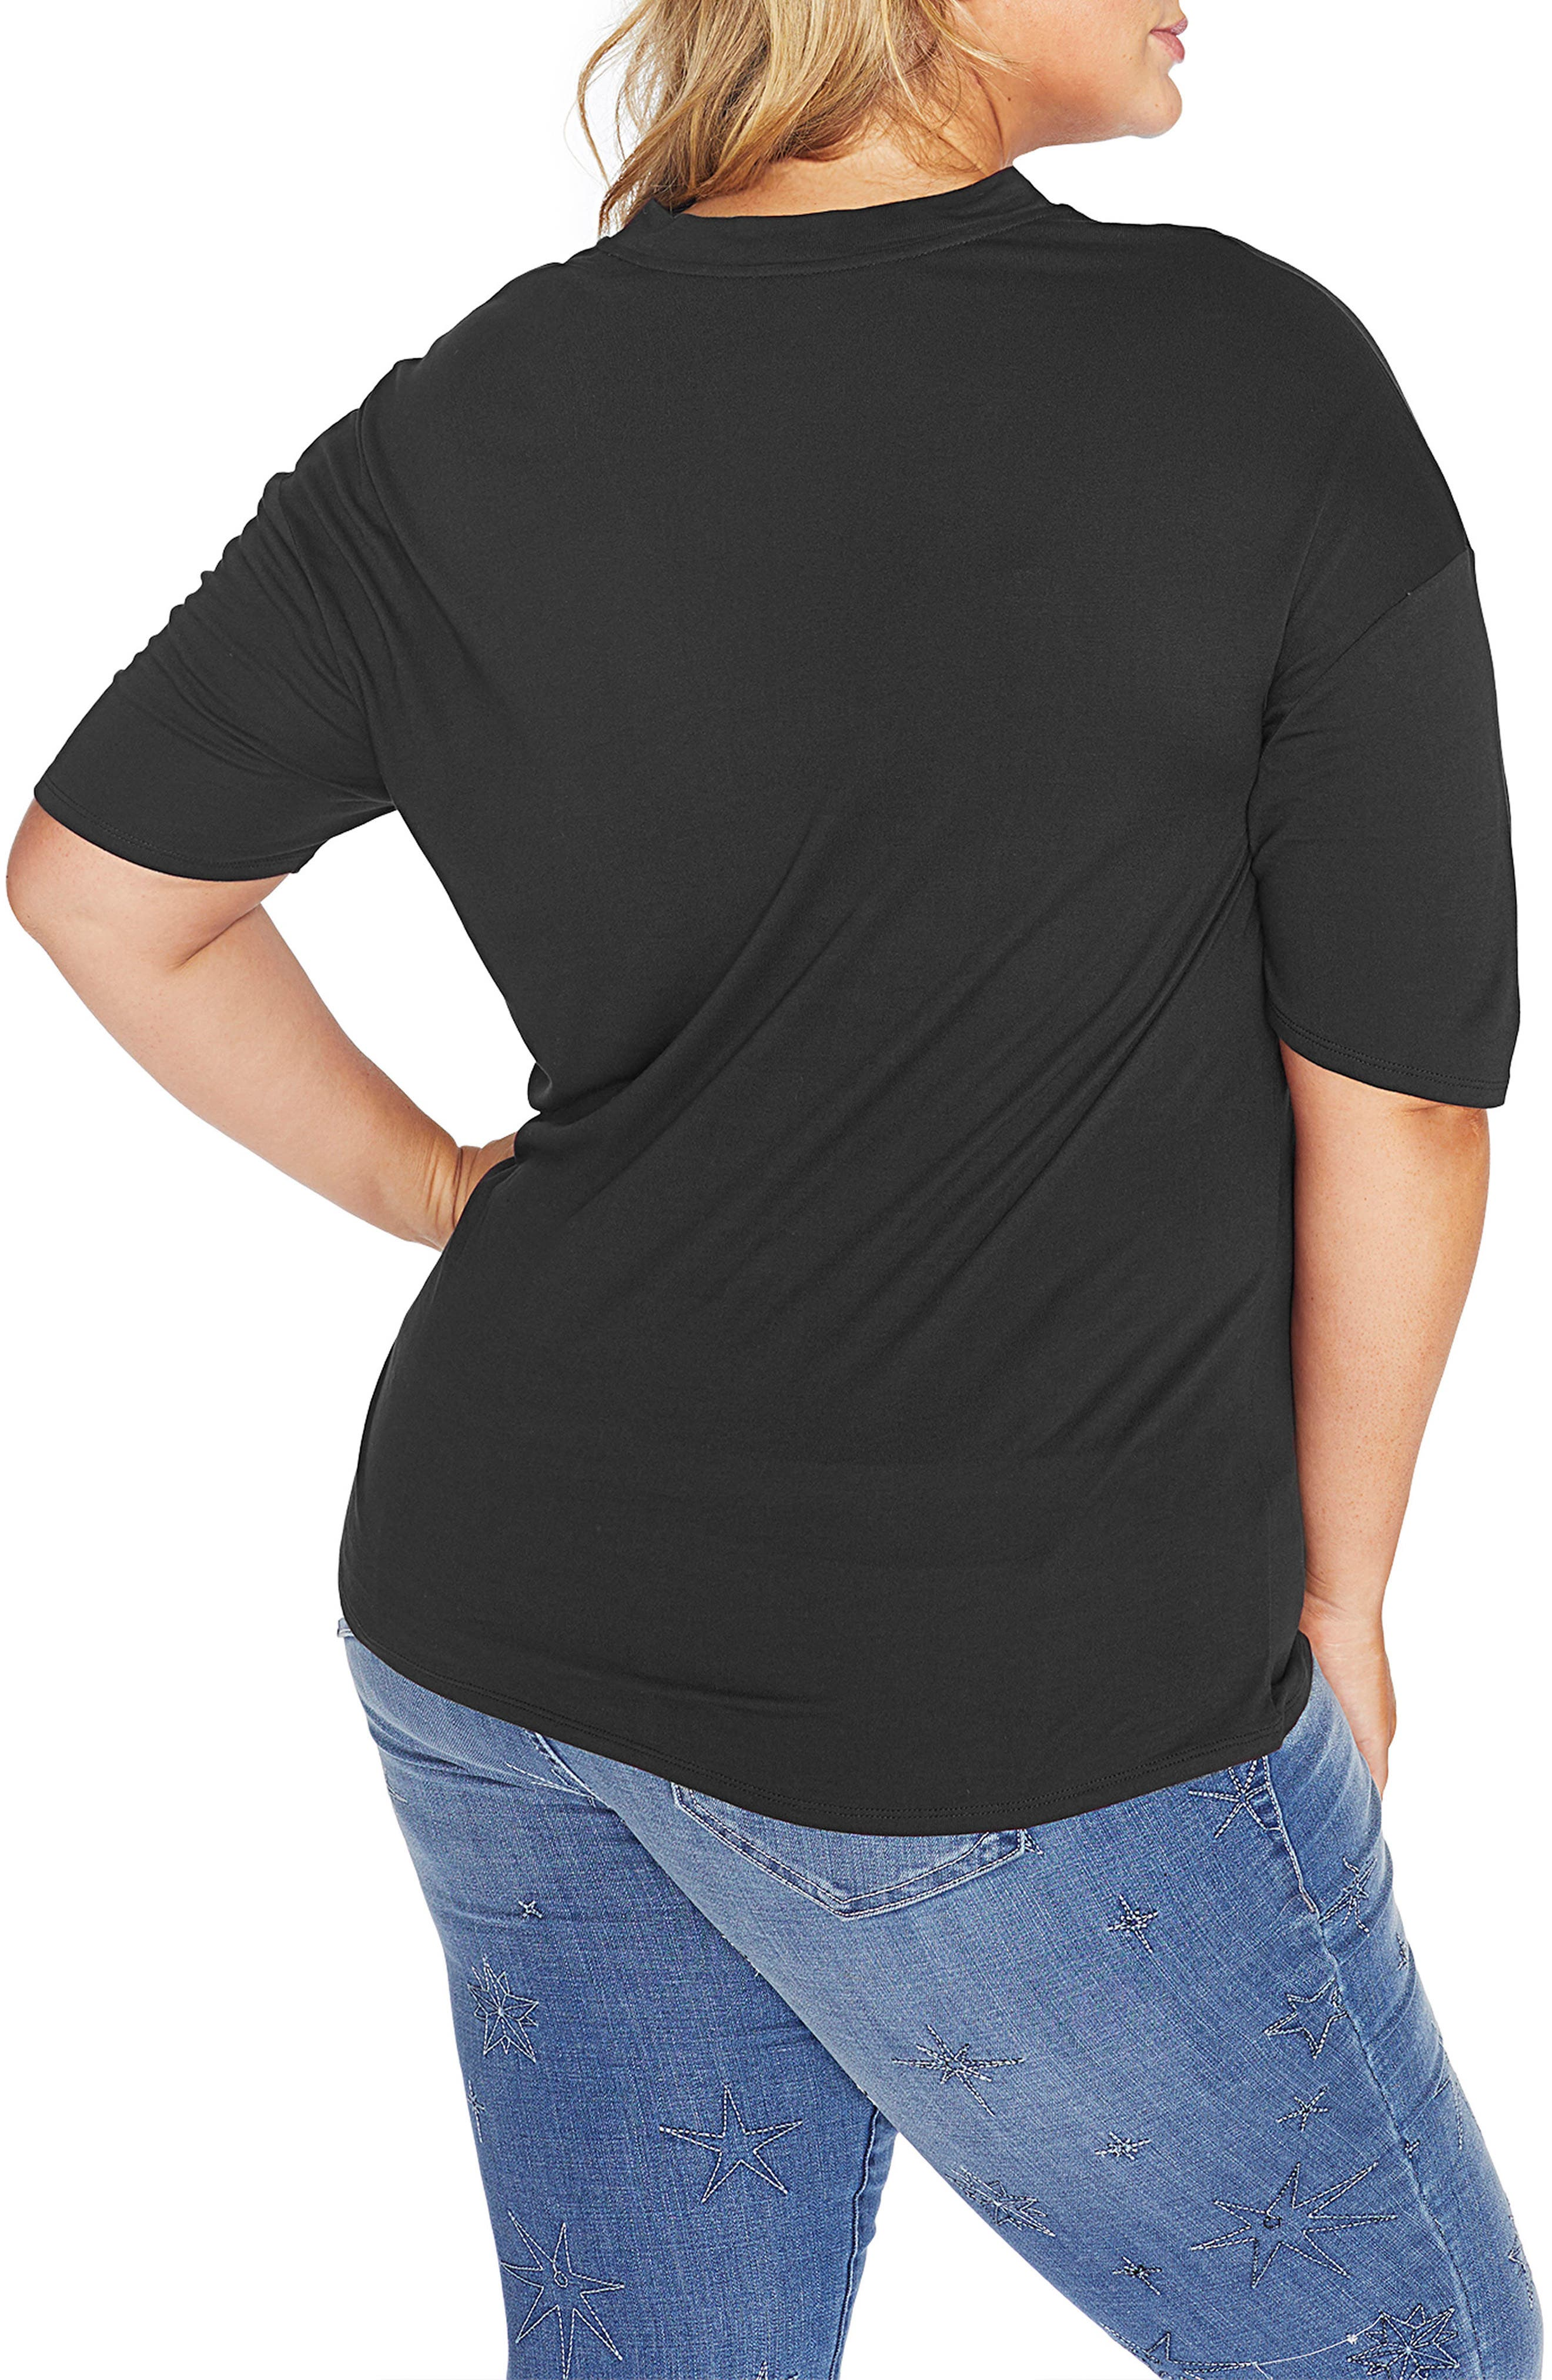 Alternate Image 2  - REBEL WILSON X ANGELS Knit Top with Neckband (Plus Size)